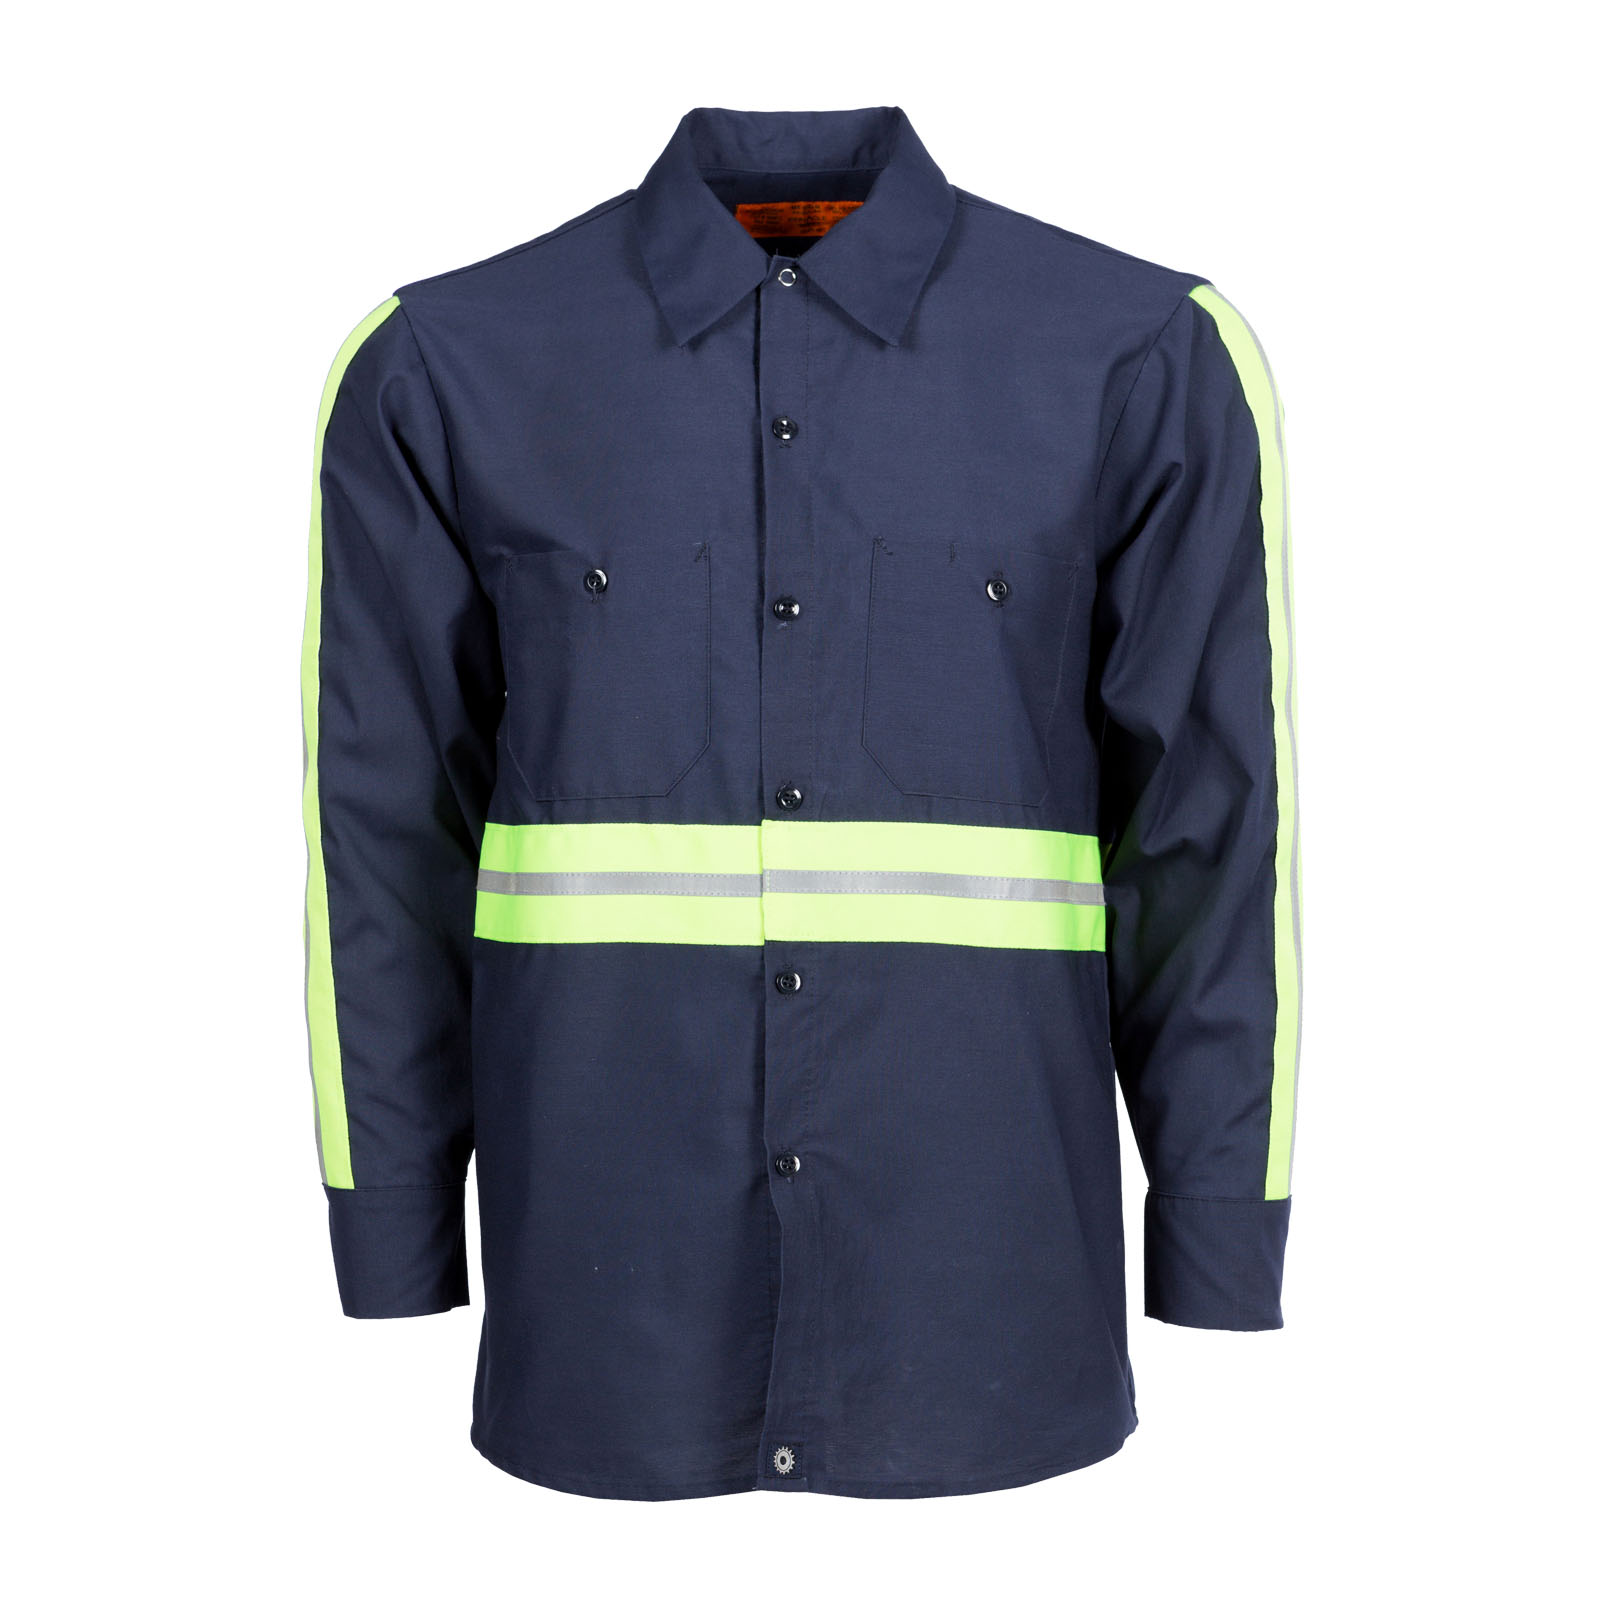 65/35 Enhanced Visibility Men's Long Sleeve Industrial Work Shirt NV Please allow 6 weeks for delivery on Enhanced Visibility items. S10EN- 65/35 Poly/Cotton Poplin 4.25-Pinnacle WorX